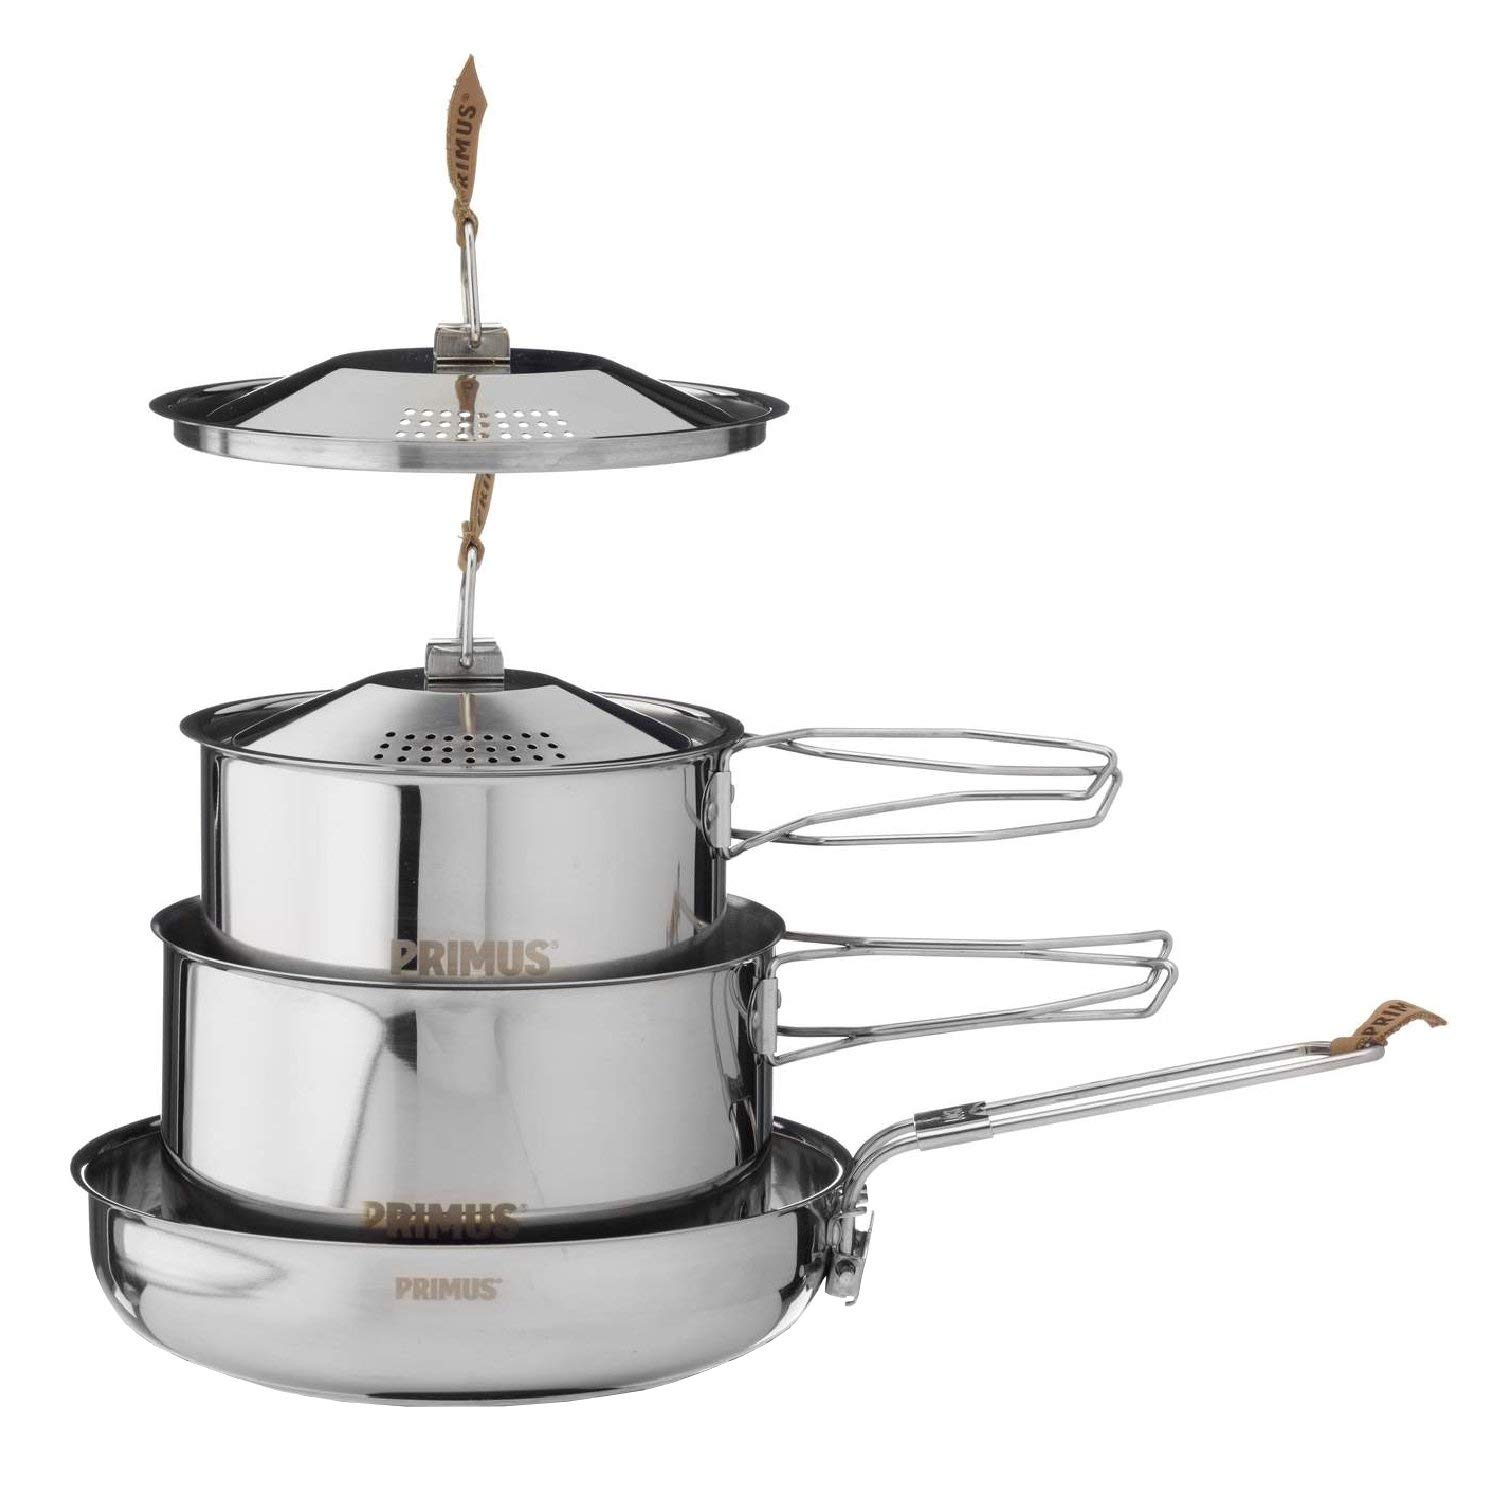 Primus Campfire Cookset, Small by Primus